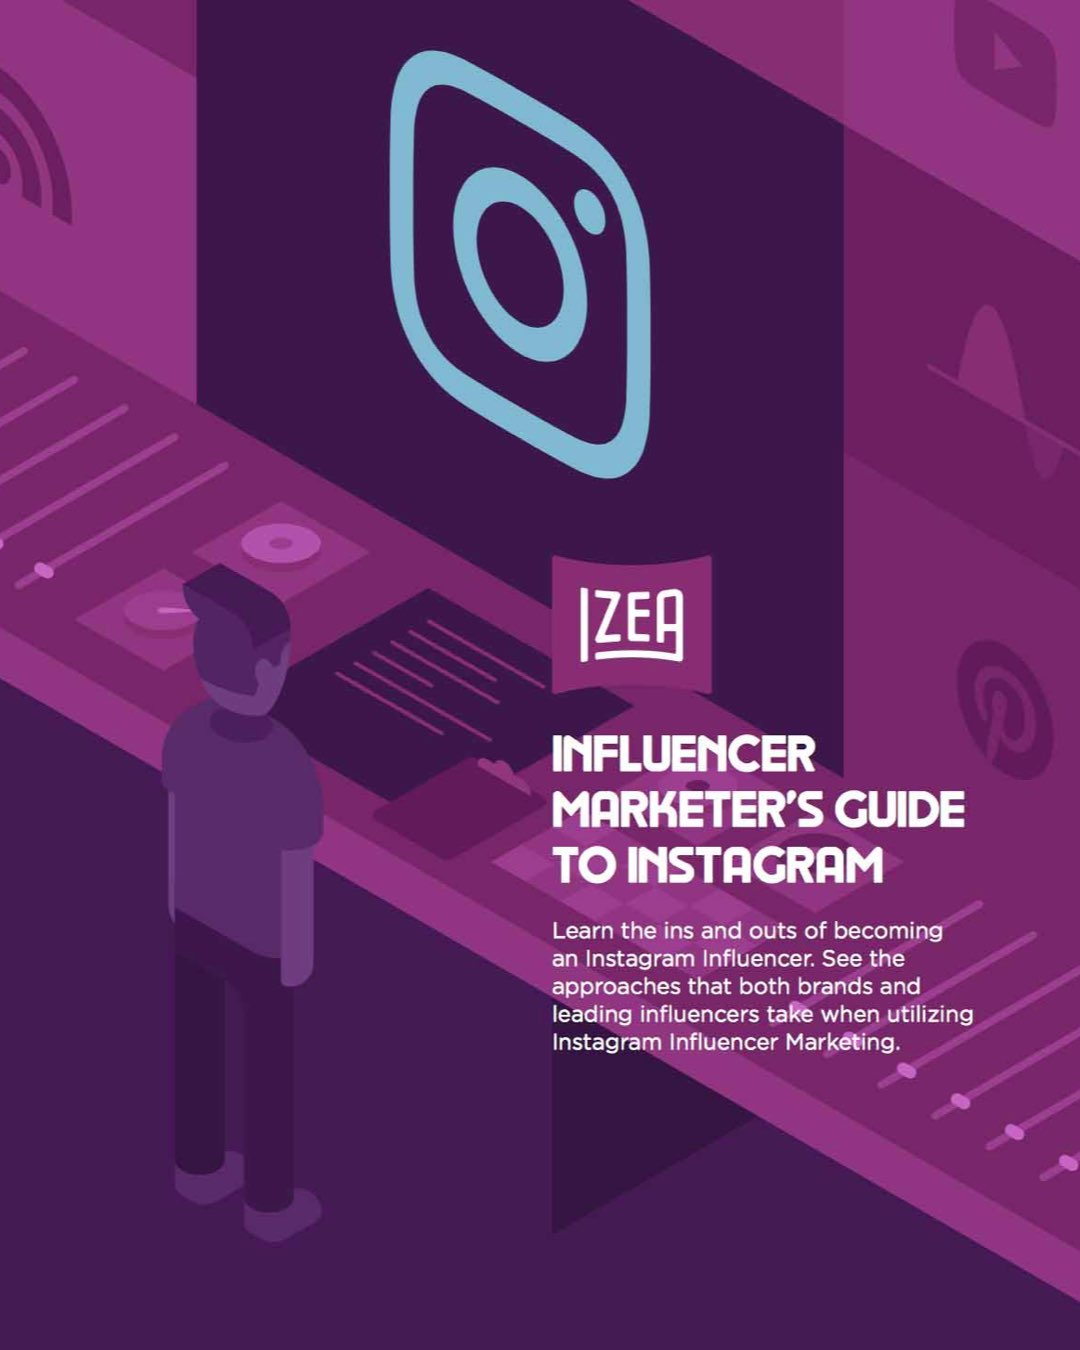 Influencer Marketer's Guide To Instagram